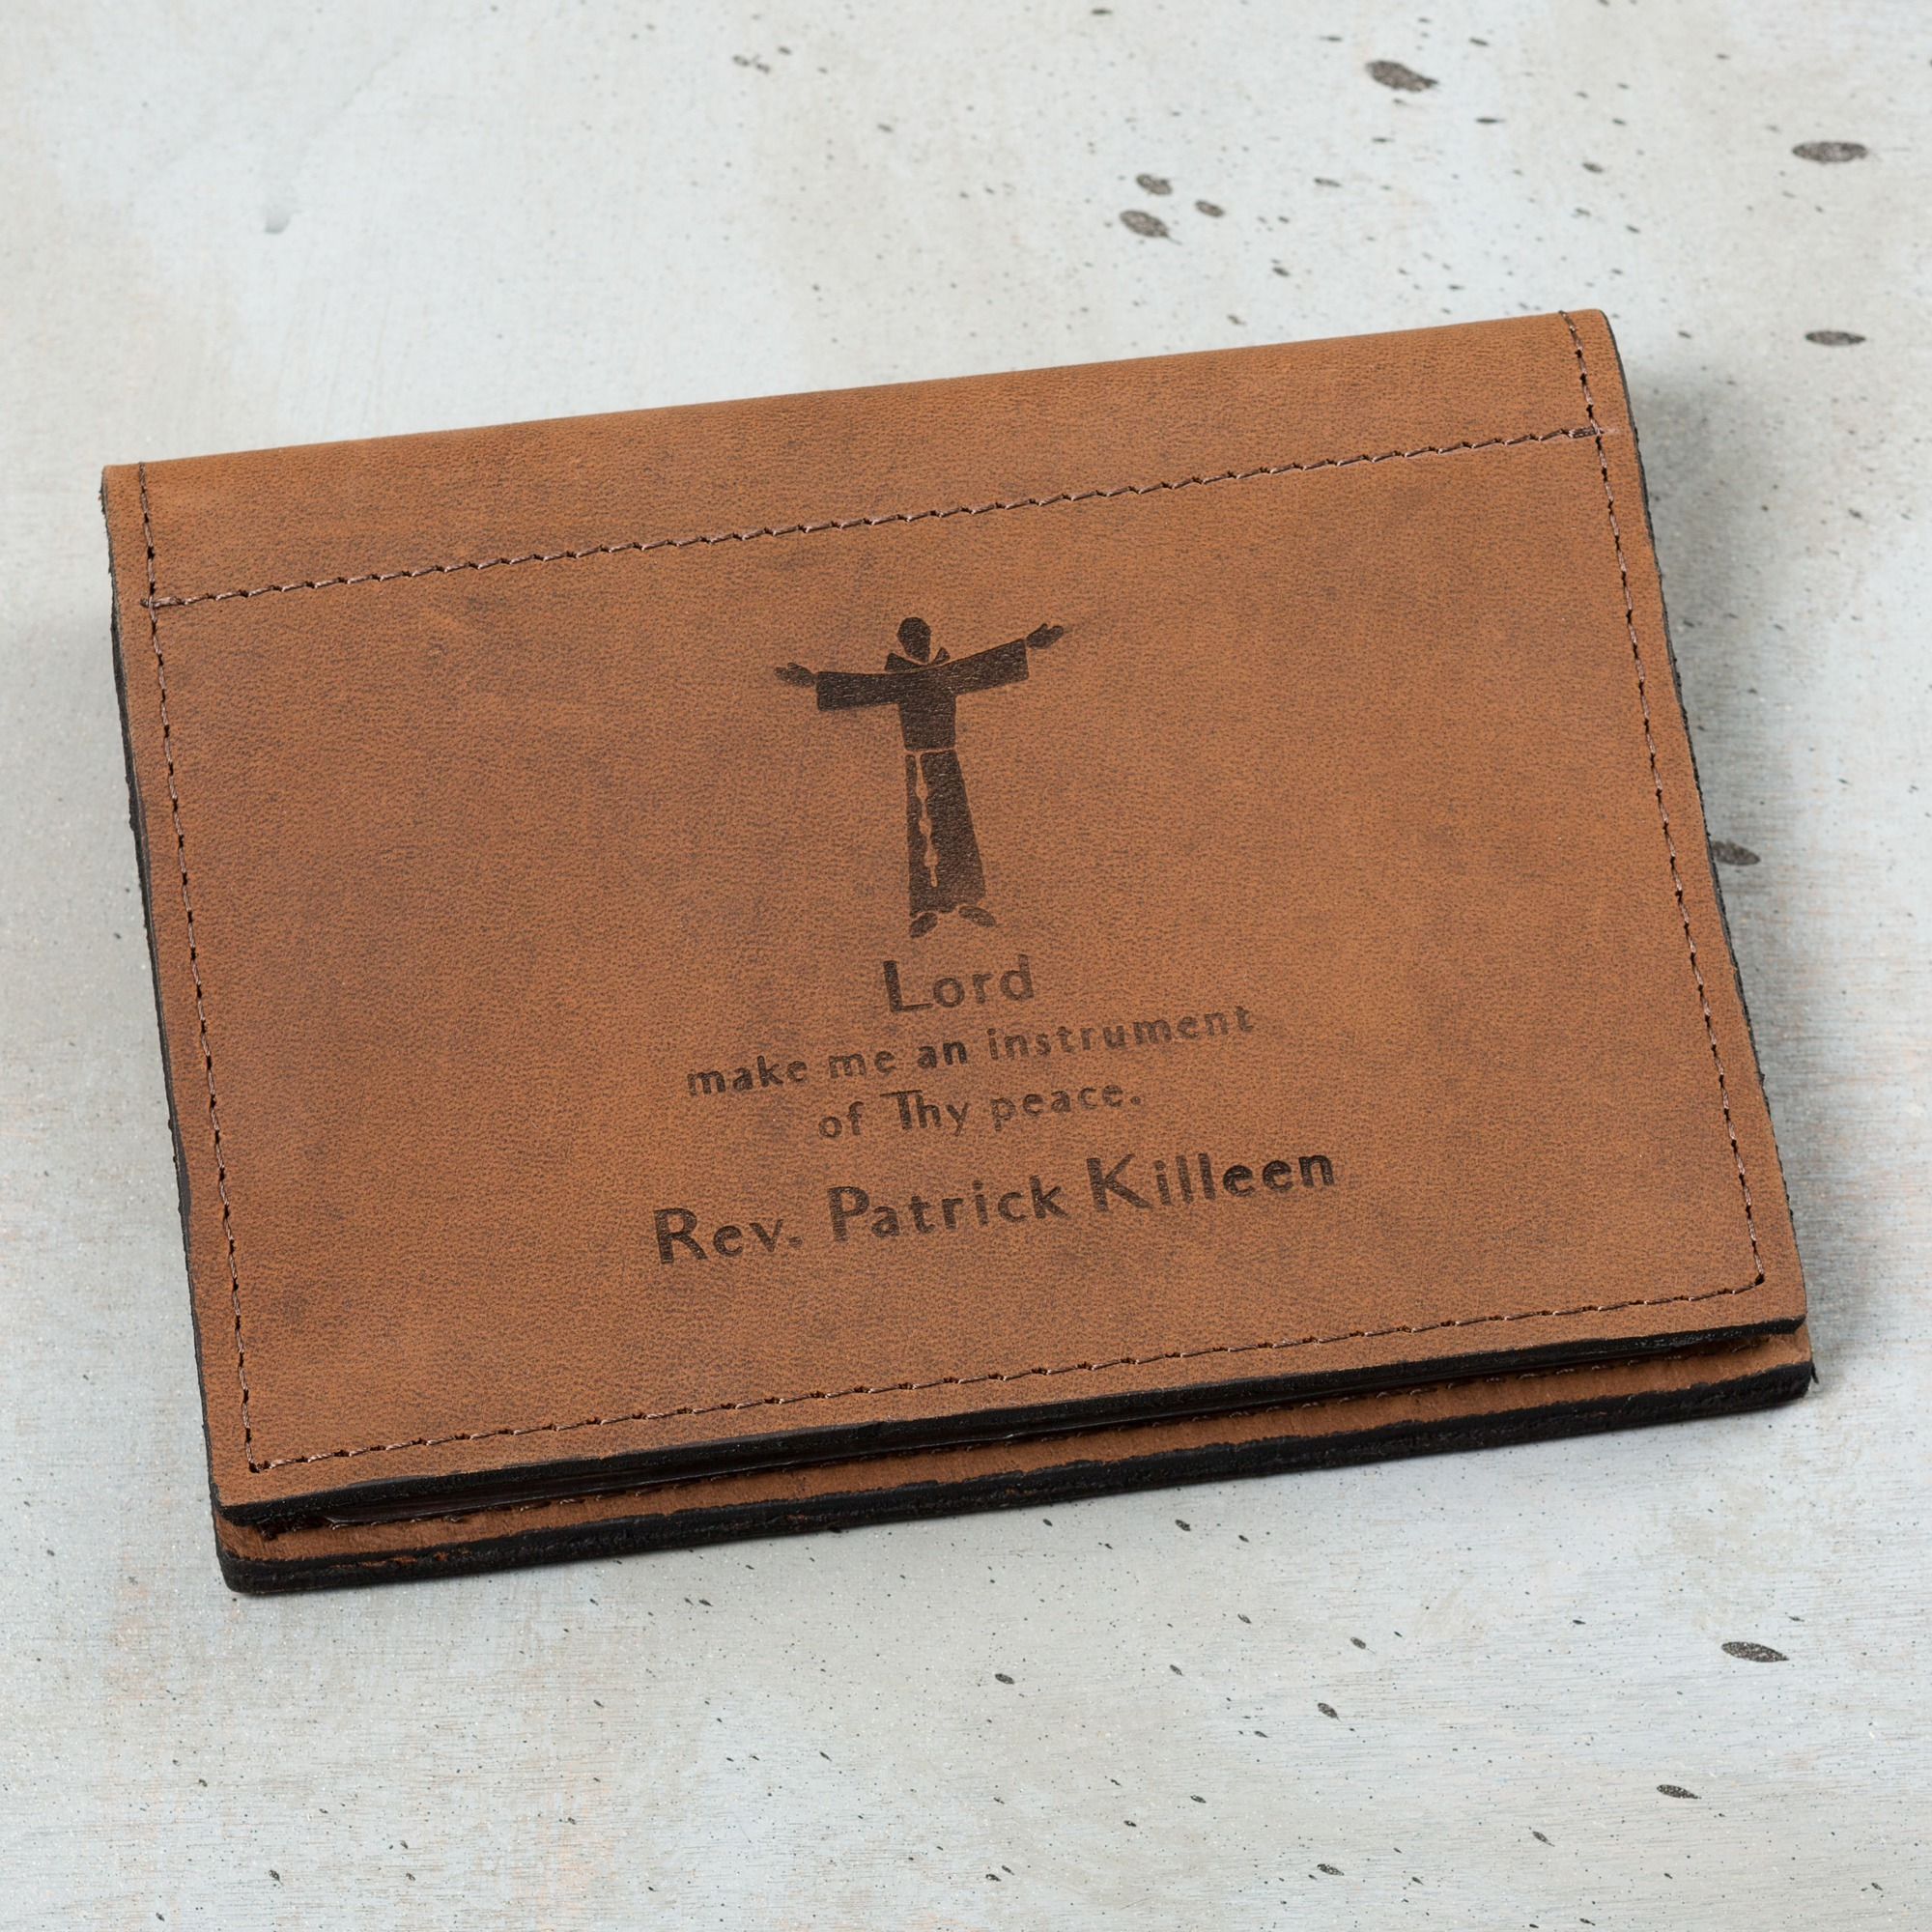 Personalized Leather Gifts, Custom Leather Gift   The Catholic Company